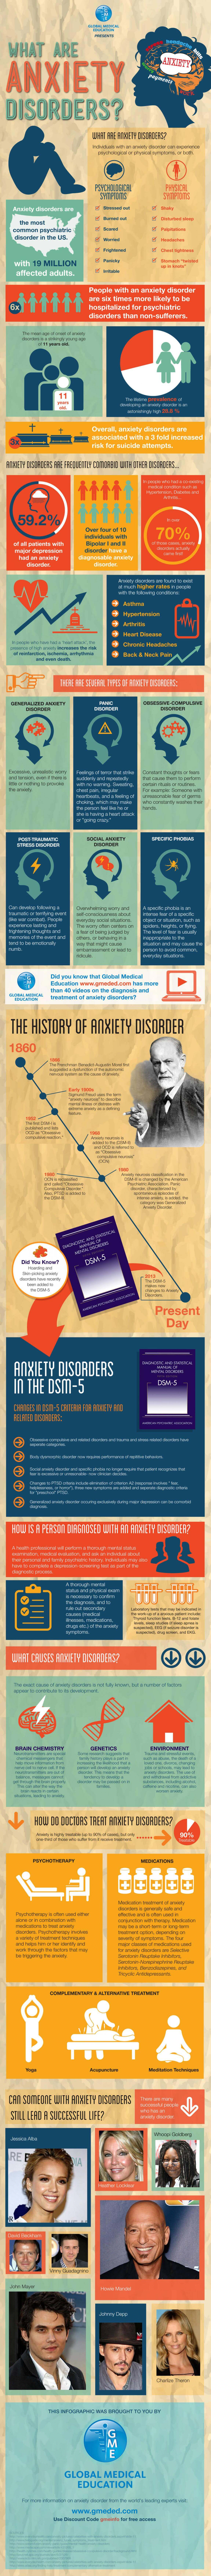 what-are-anxiety-disorders-tips-tipsographic